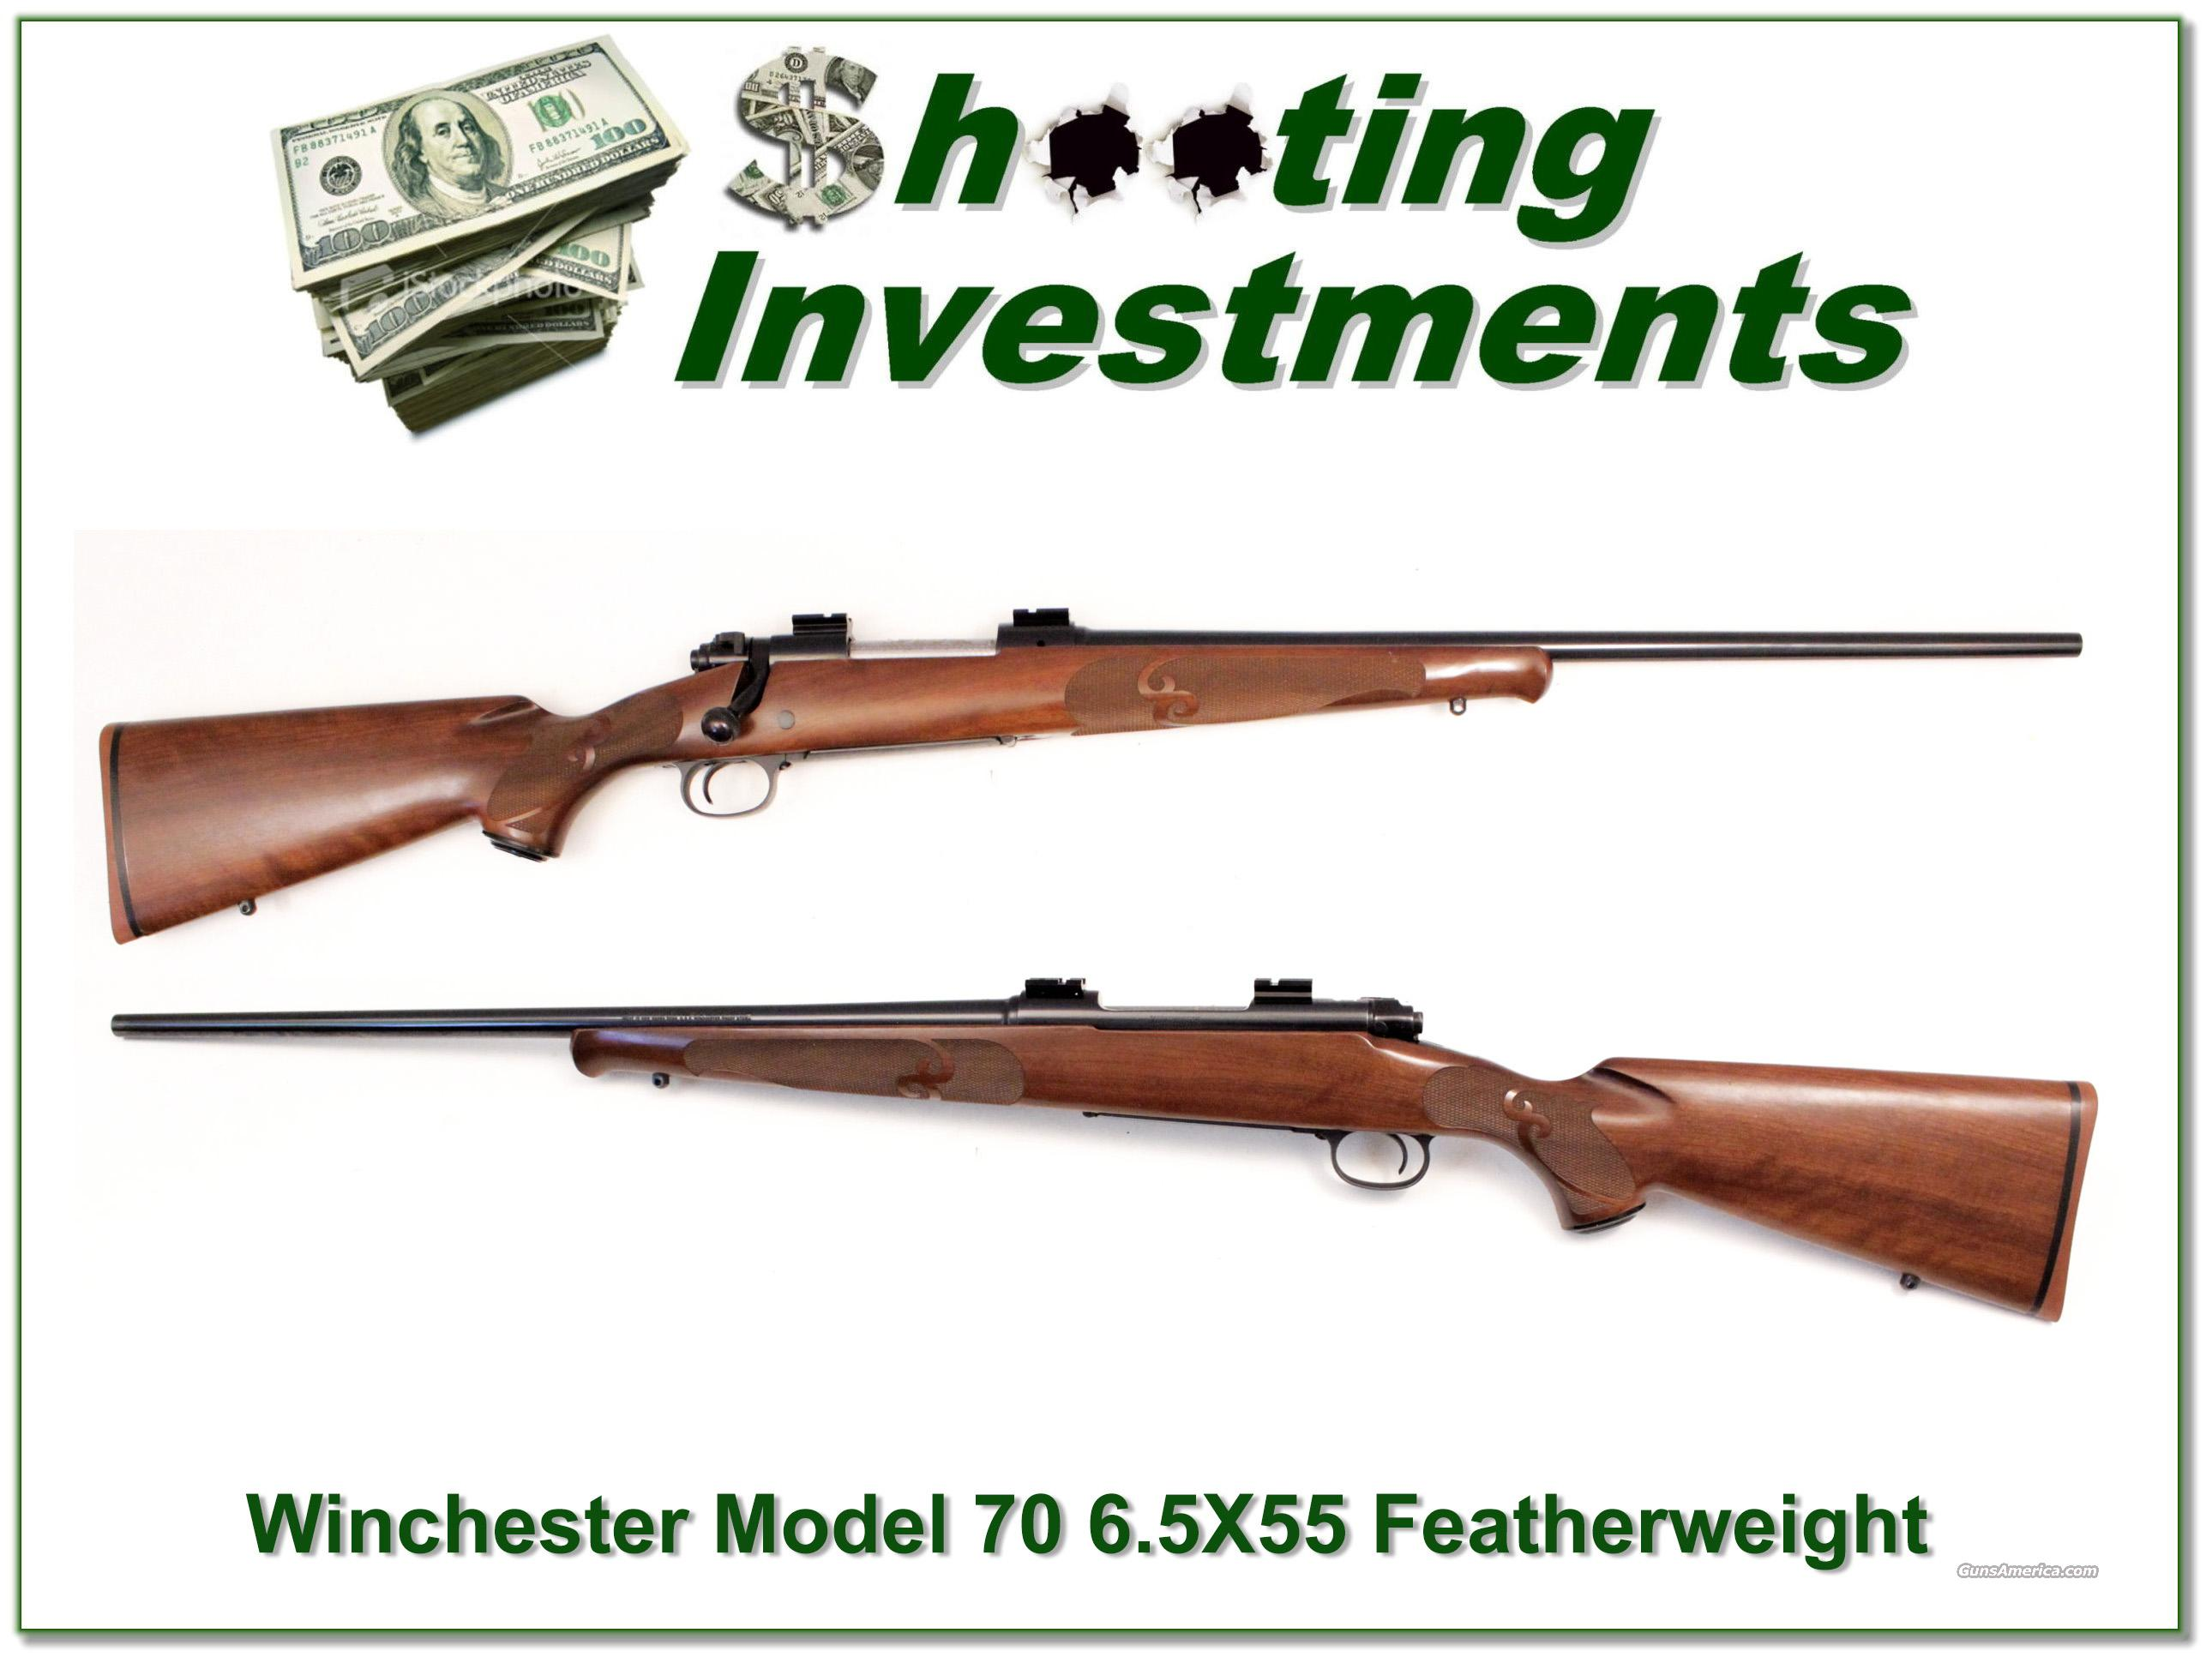 Winchester Model 70 Featherweight in 6.5 X 55 Exc Cond  Guns > Rifles > Winchester Rifles - Modern Bolt/Auto/Single > Model 70 > Post-64